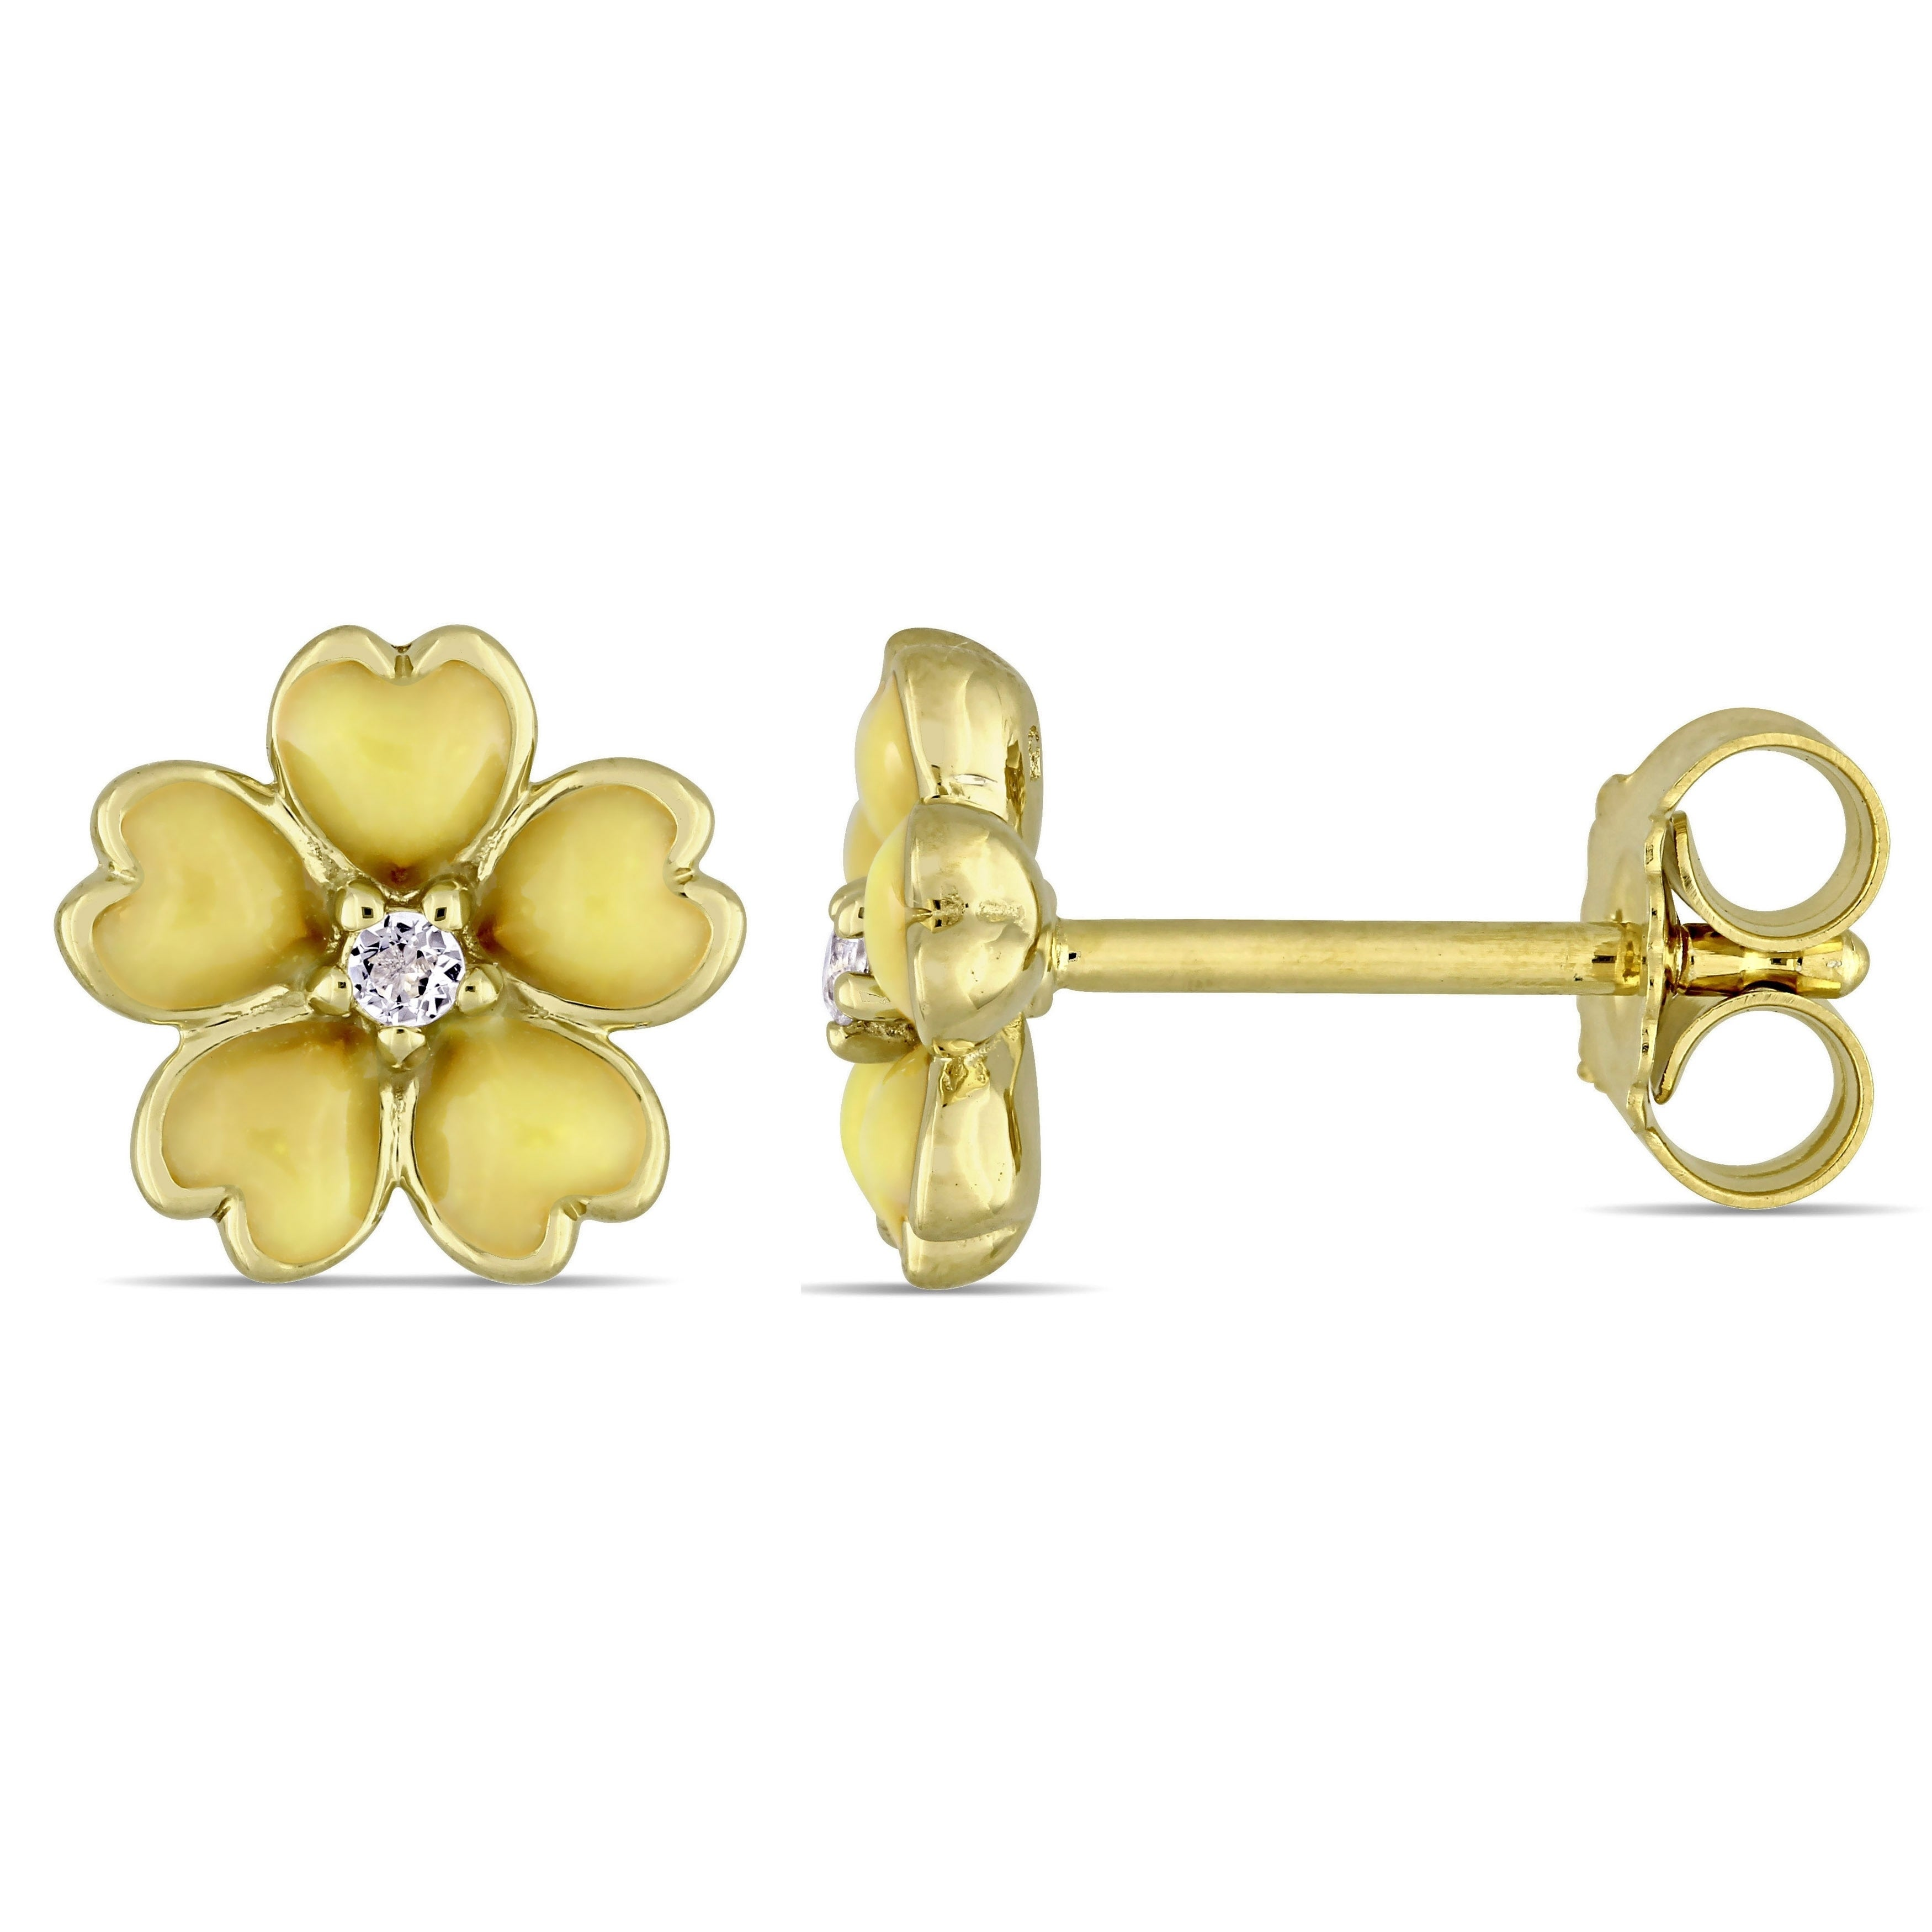 white Topaz stud earrings butterfly backs 14k solid yellow gold cultured Pearl